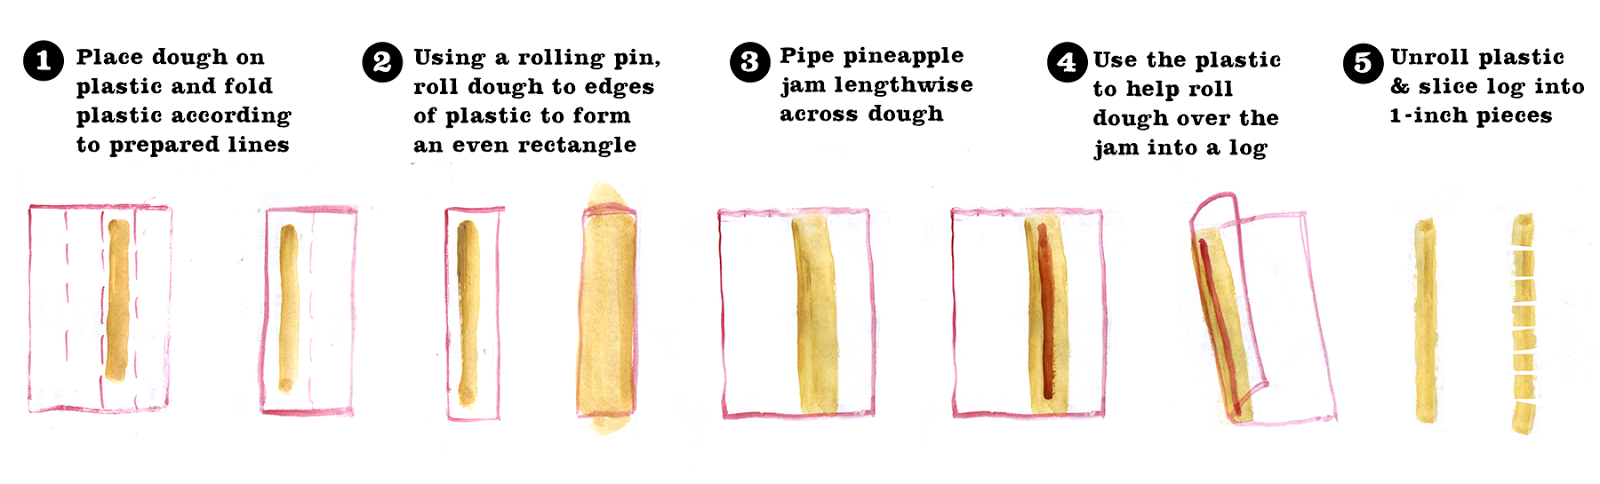 Pineapple Tarts, Lauren Monaco Illustration